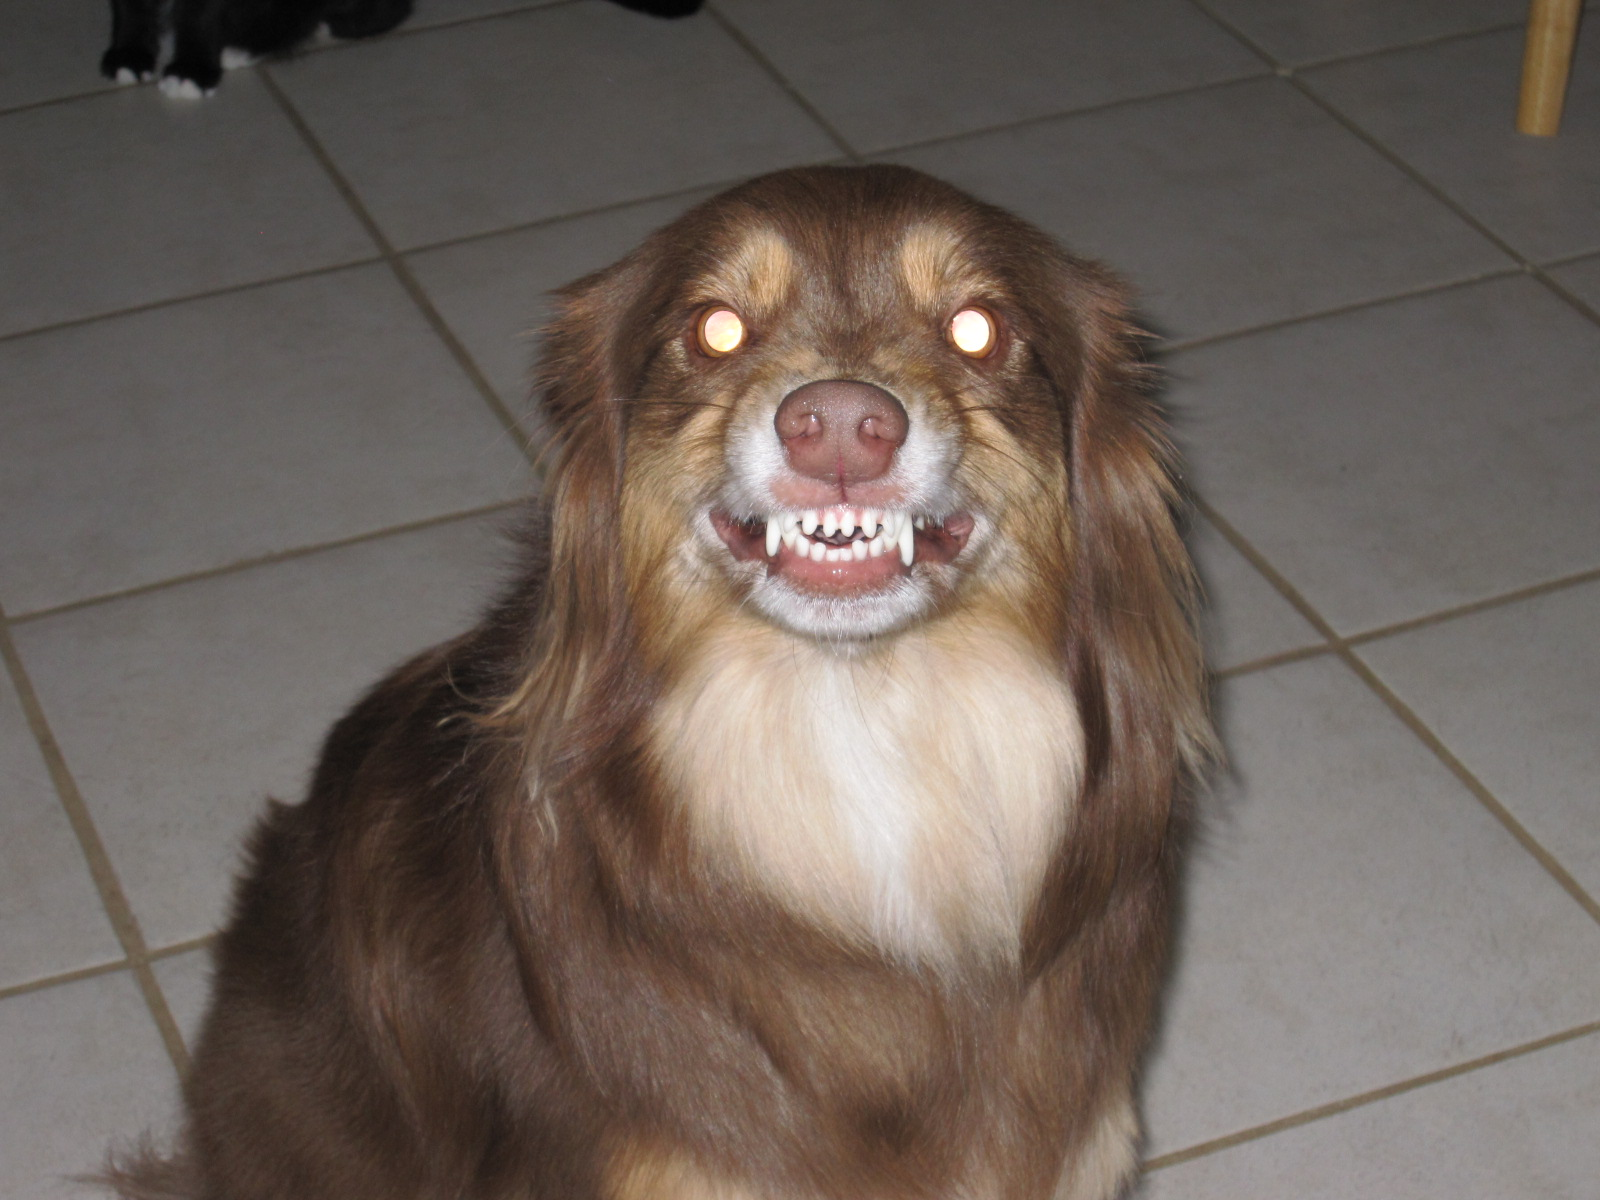 Dog Shows Teeth When I Come Home